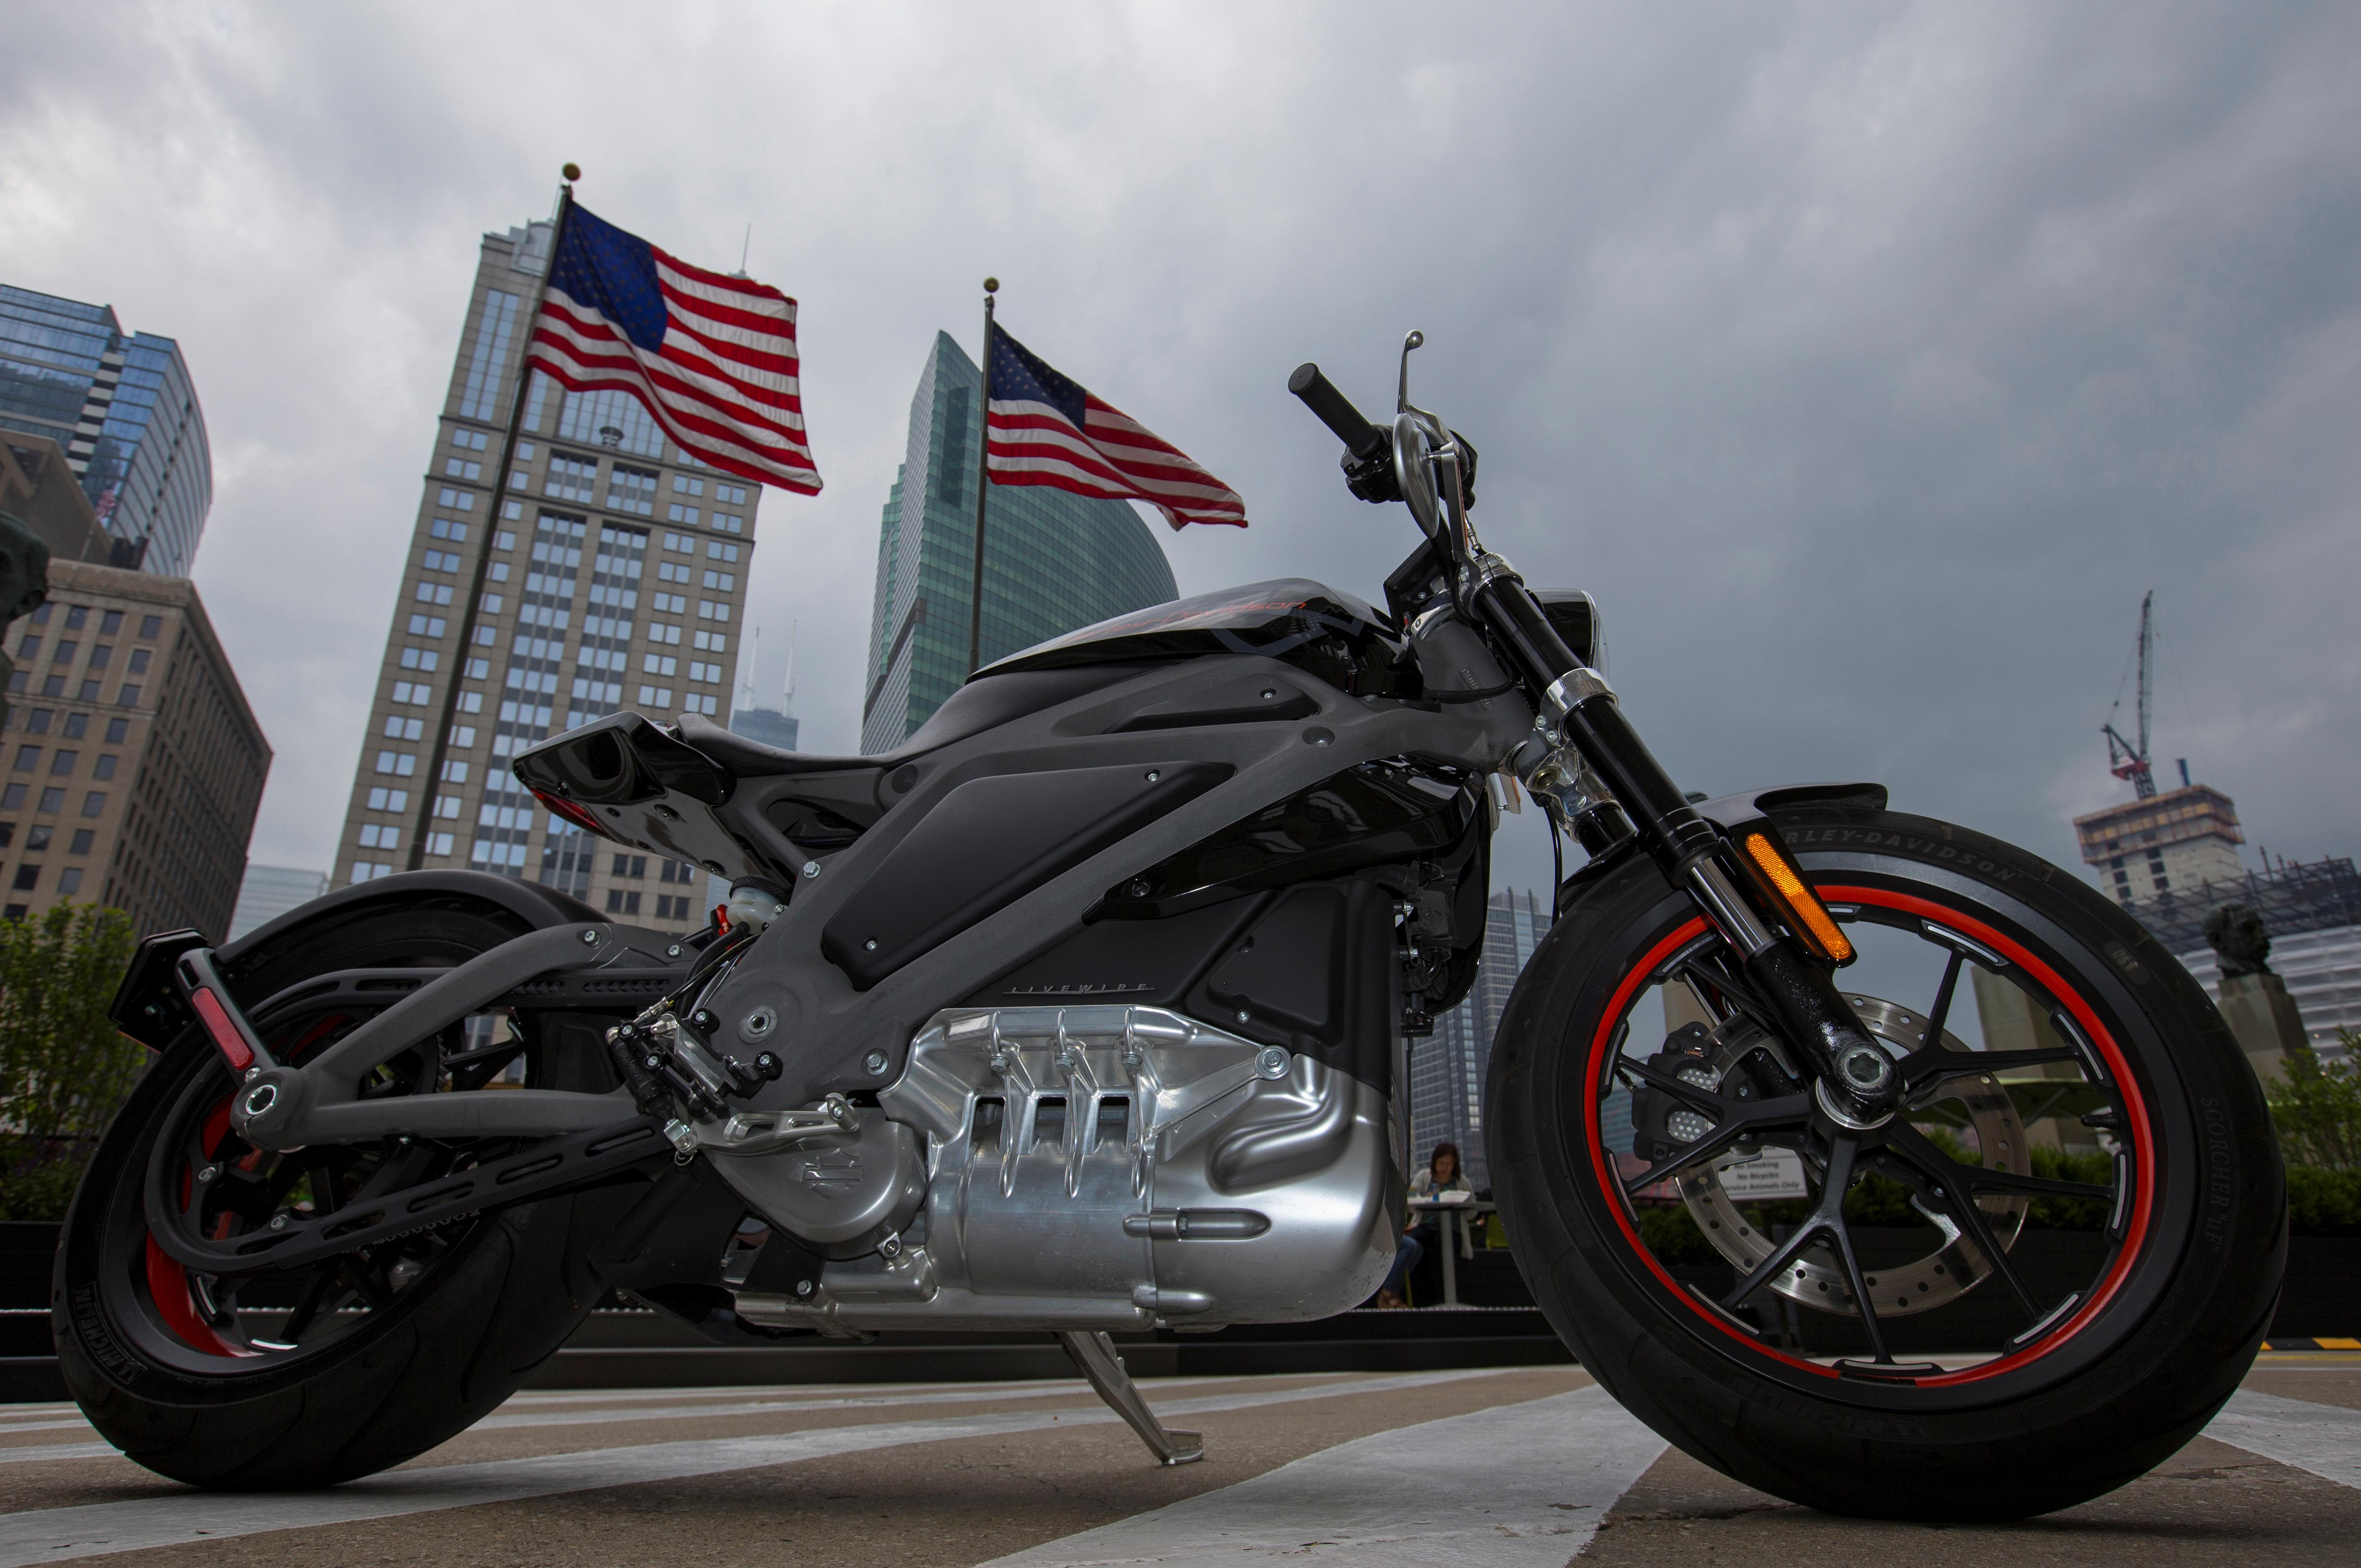 Electric motorcycles are the future: 'American Chopper' star